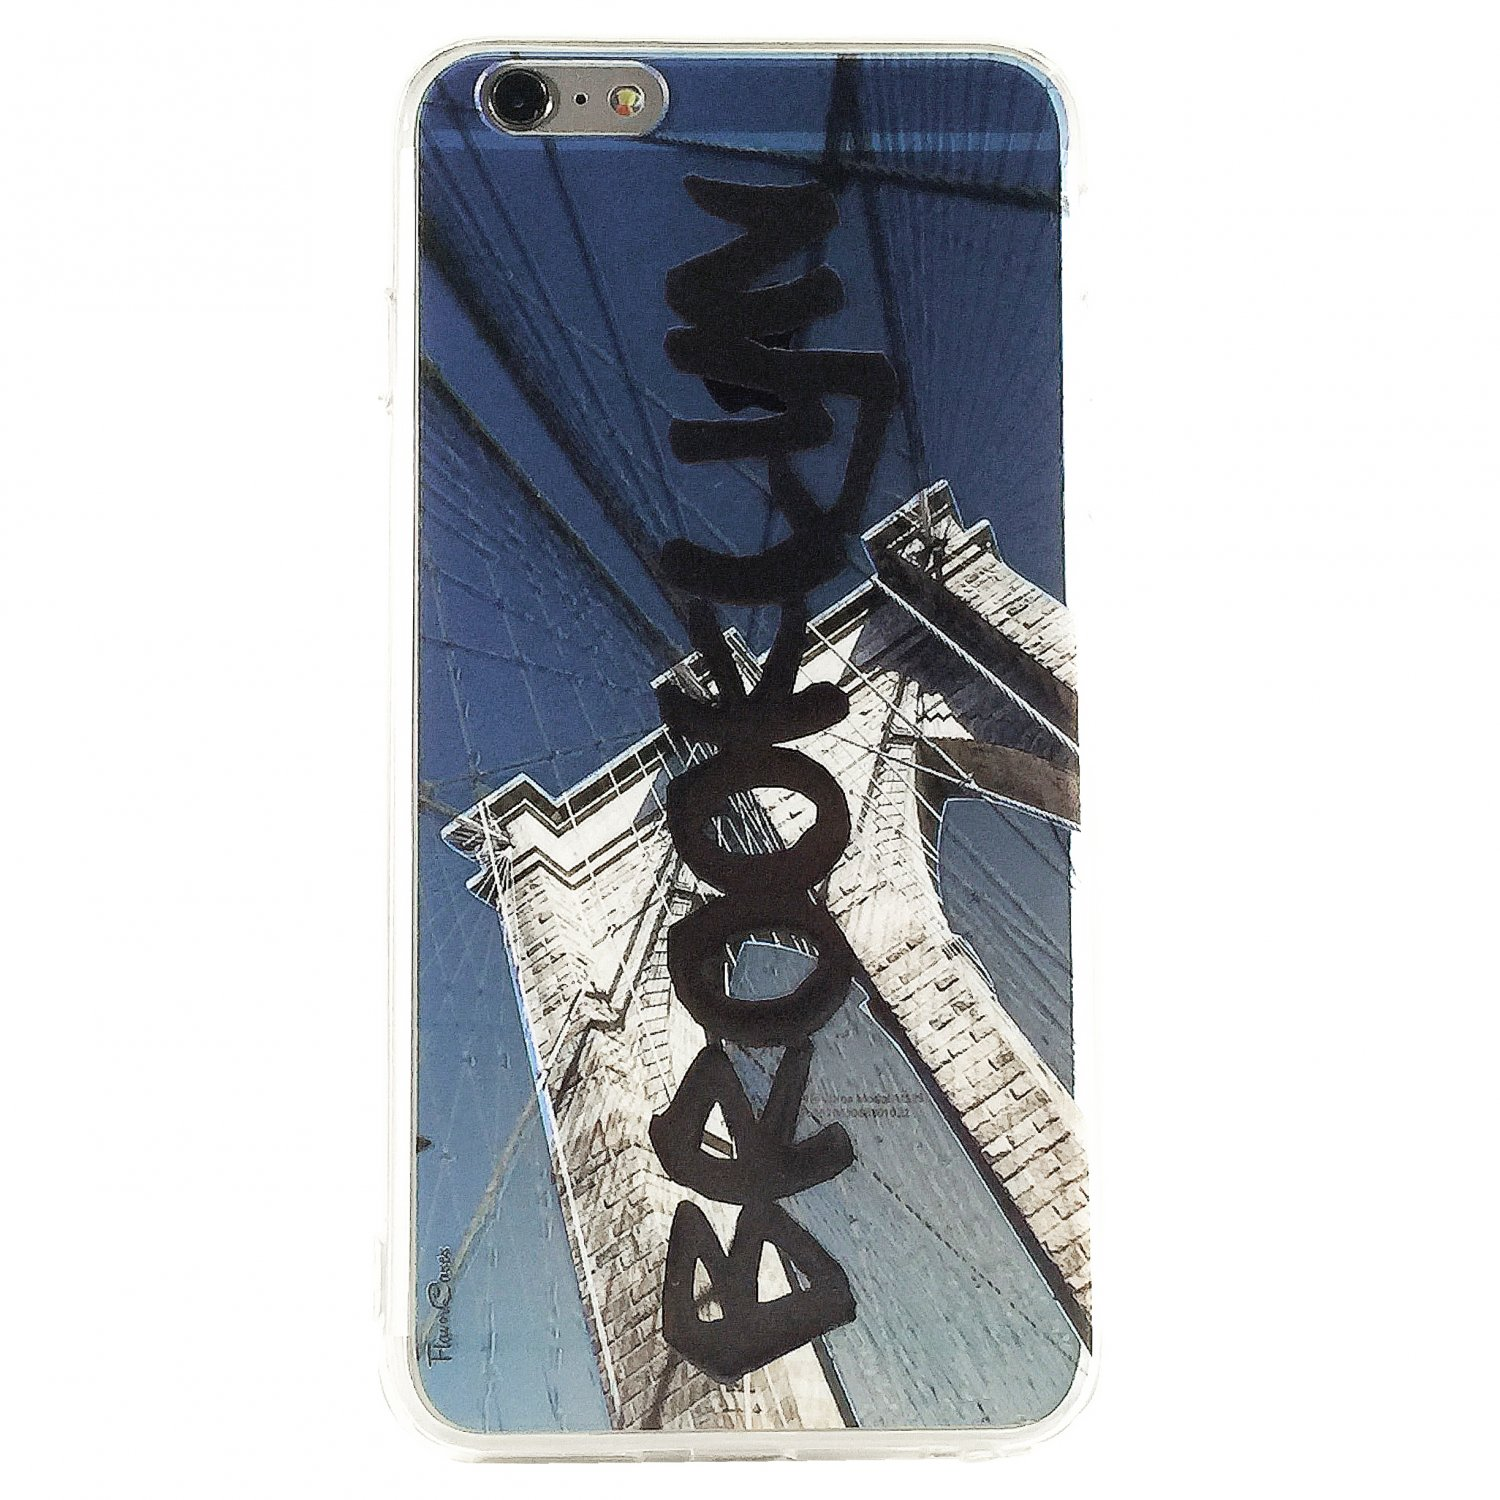 Brooklyn Bridge -New New York Brooklyn Bridge Cell Phone Case iPhone 6 plus  ip6 plus